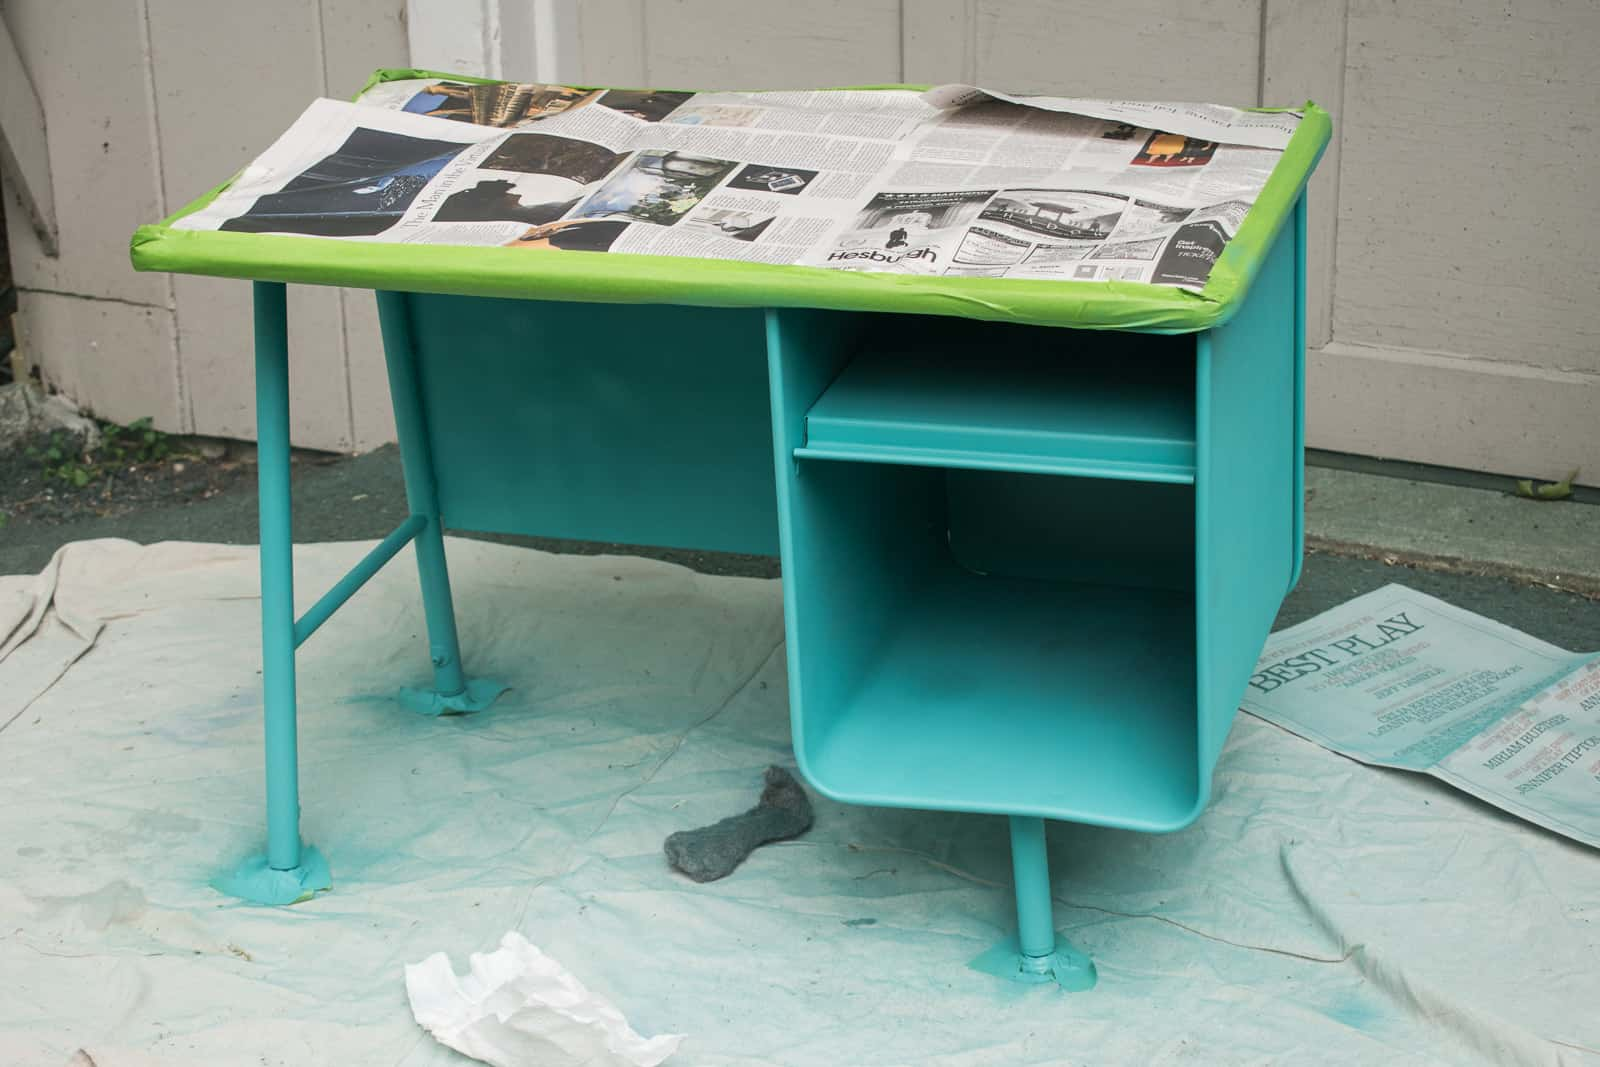 spray painting the desk